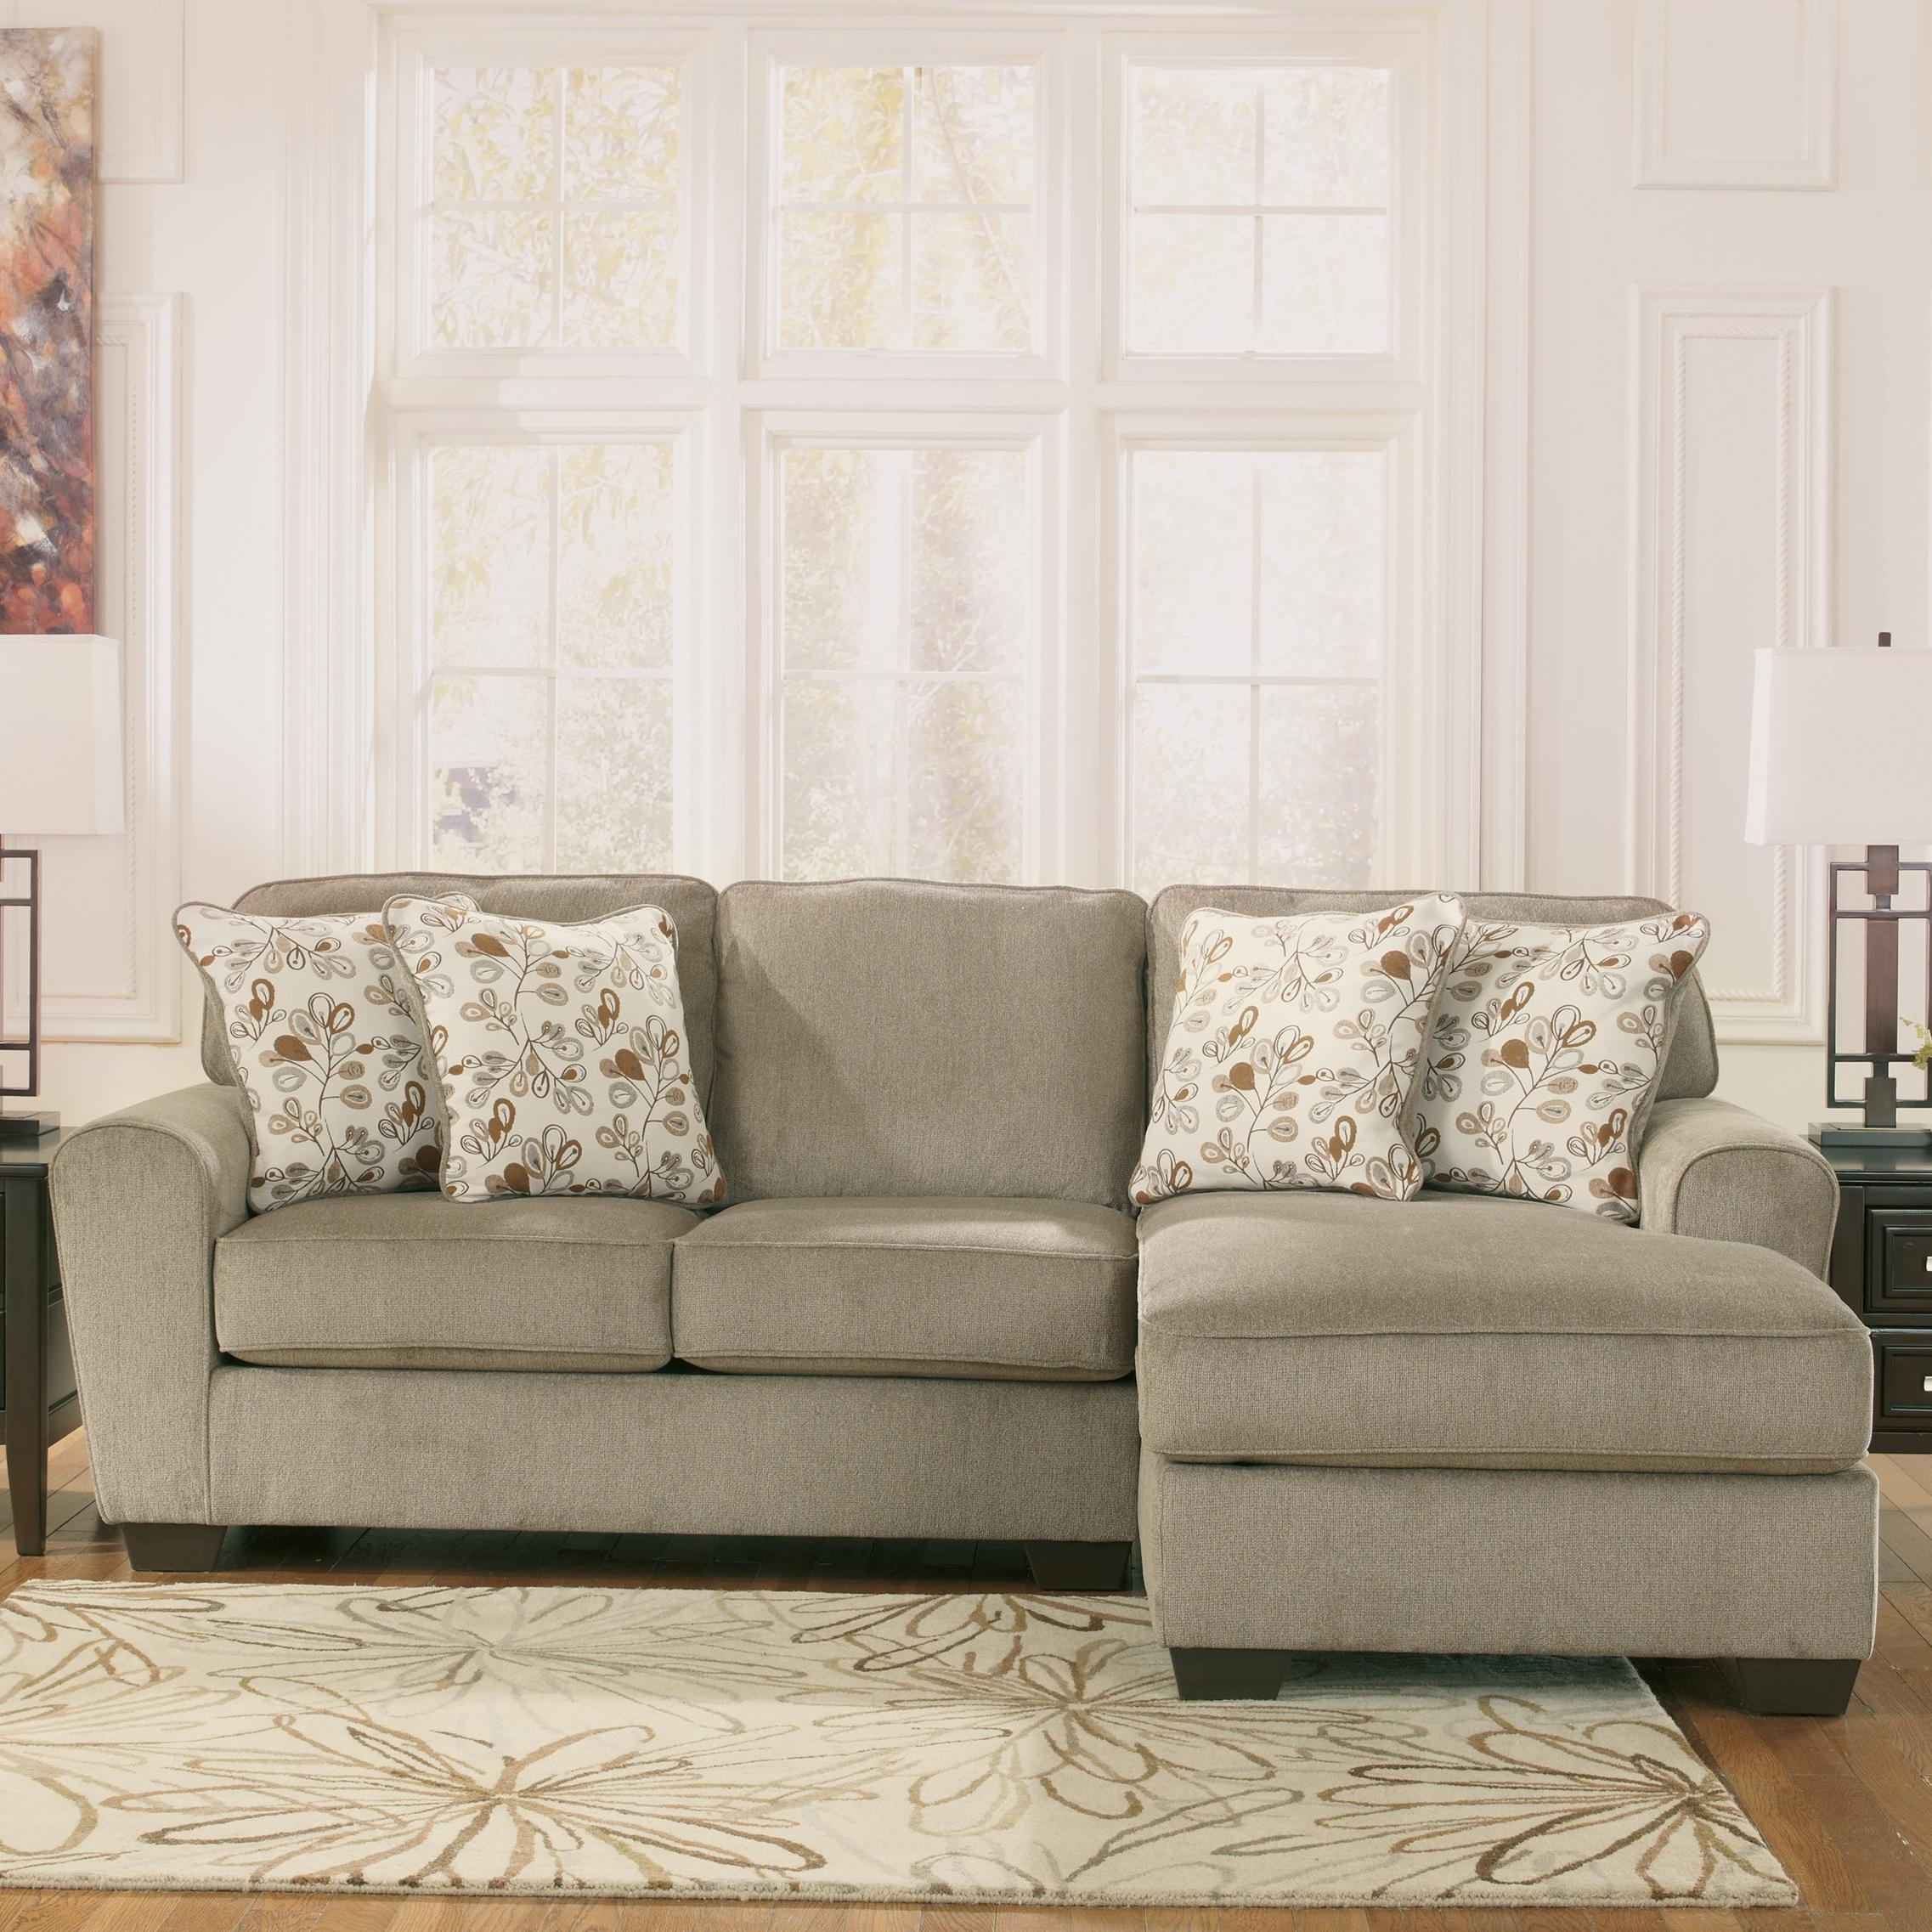 Top Sectional With 2 Chaise Lounges &yz44 – Roccommunity within Lucy Grey 2 Piece Sectionals With Raf Chaise (Image 30 of 30)